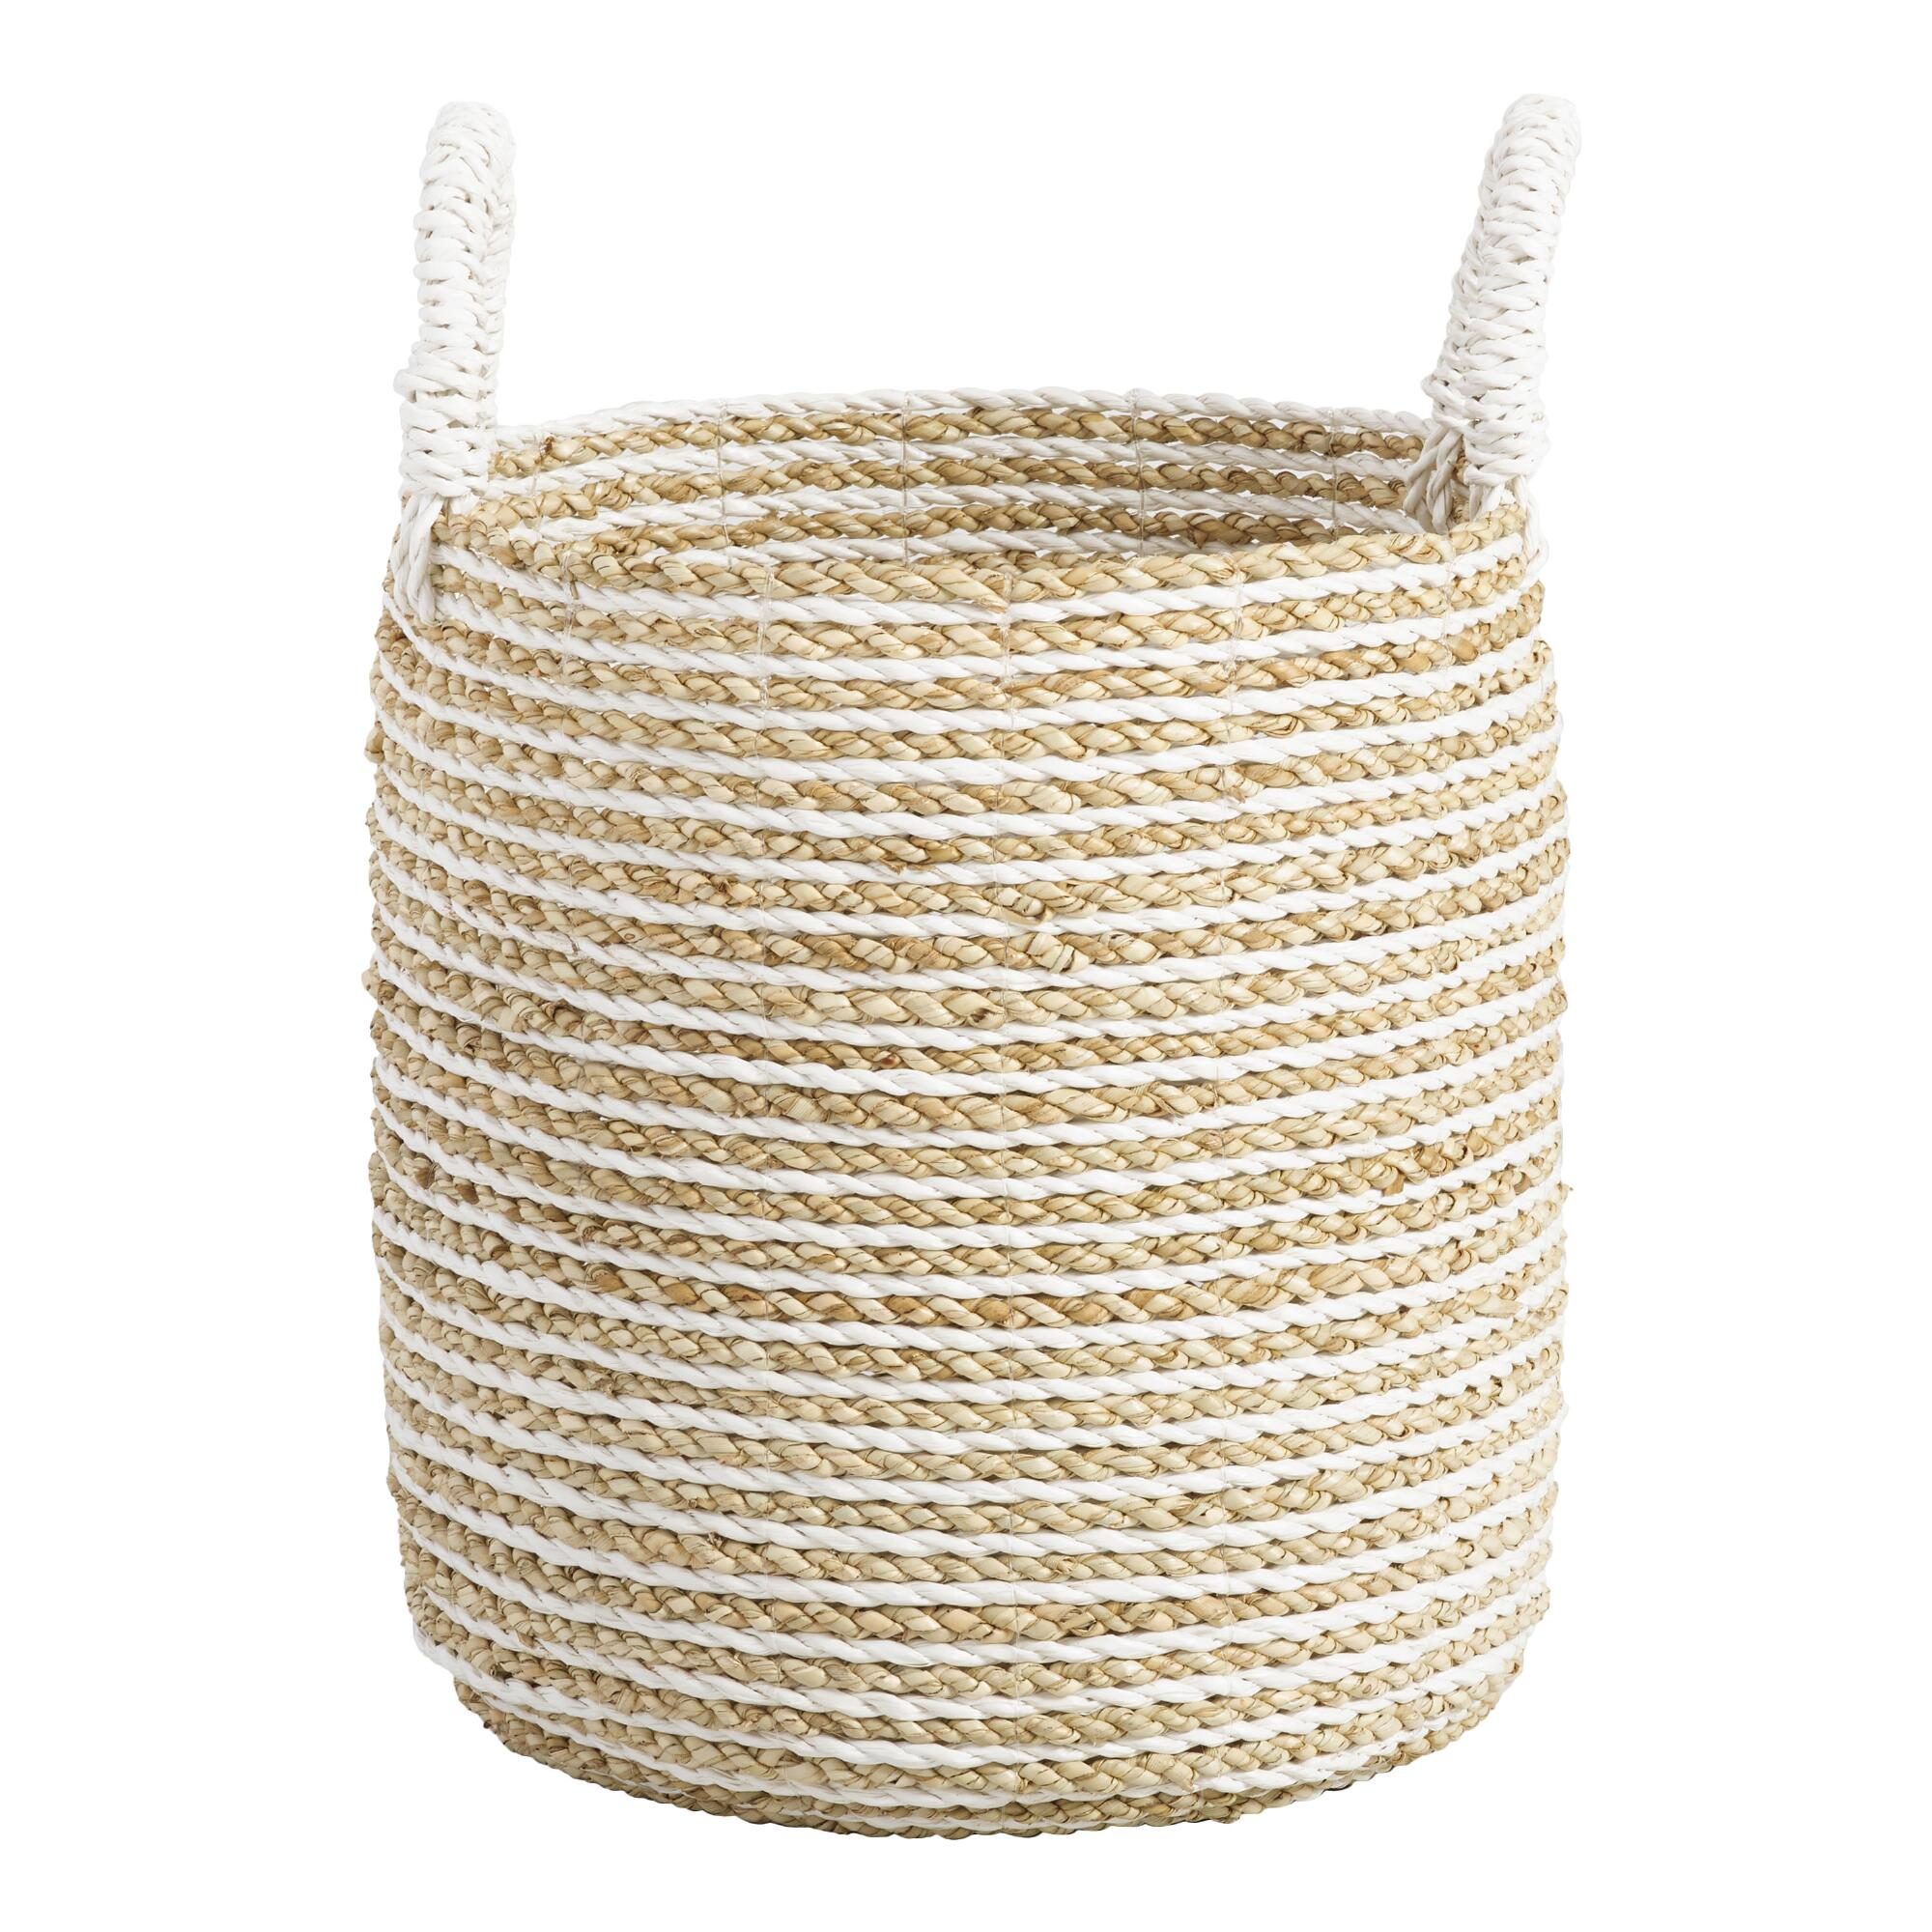 Small Striped Seagrass Bianca Tote Basket: White - Natural Fiber by World Market